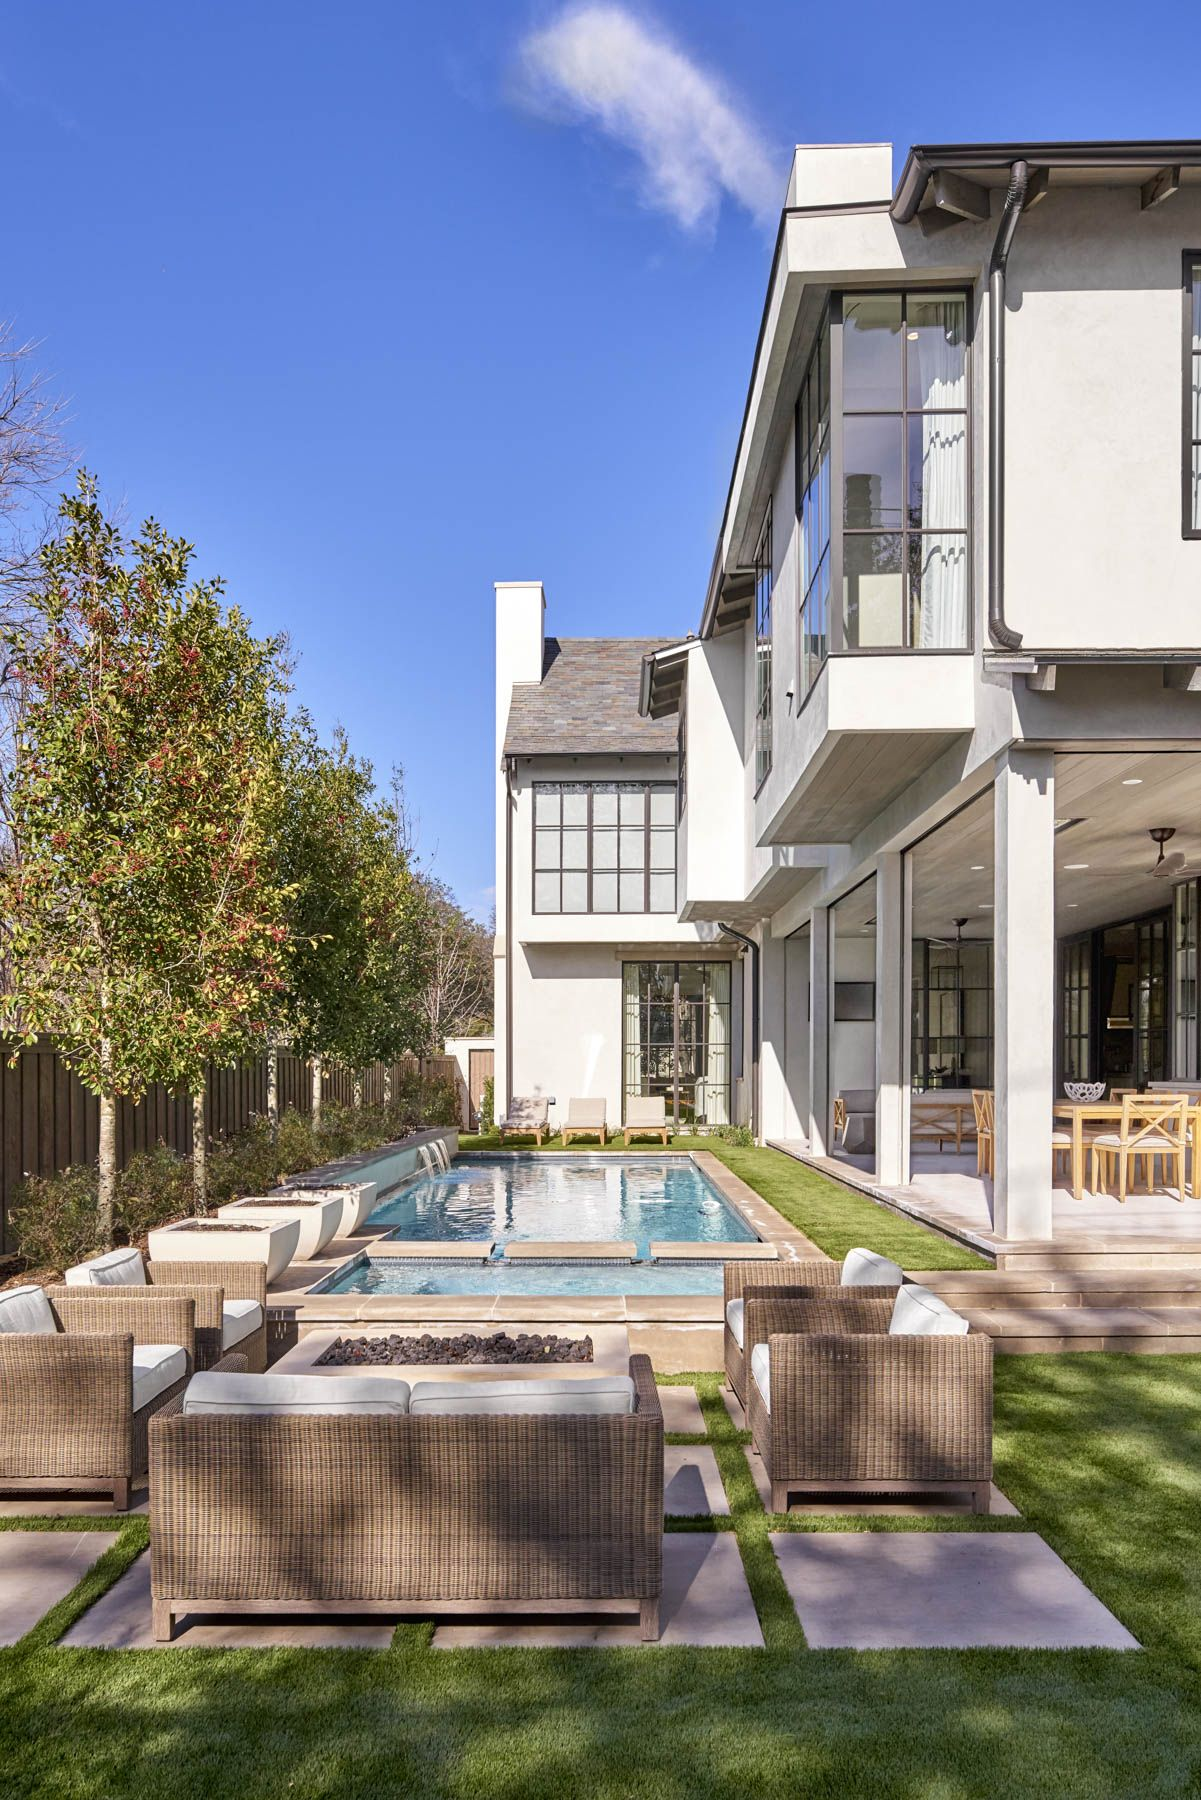 Home exterieur designtrends 2018 featured homes  robert elliott custom homes  exterior in